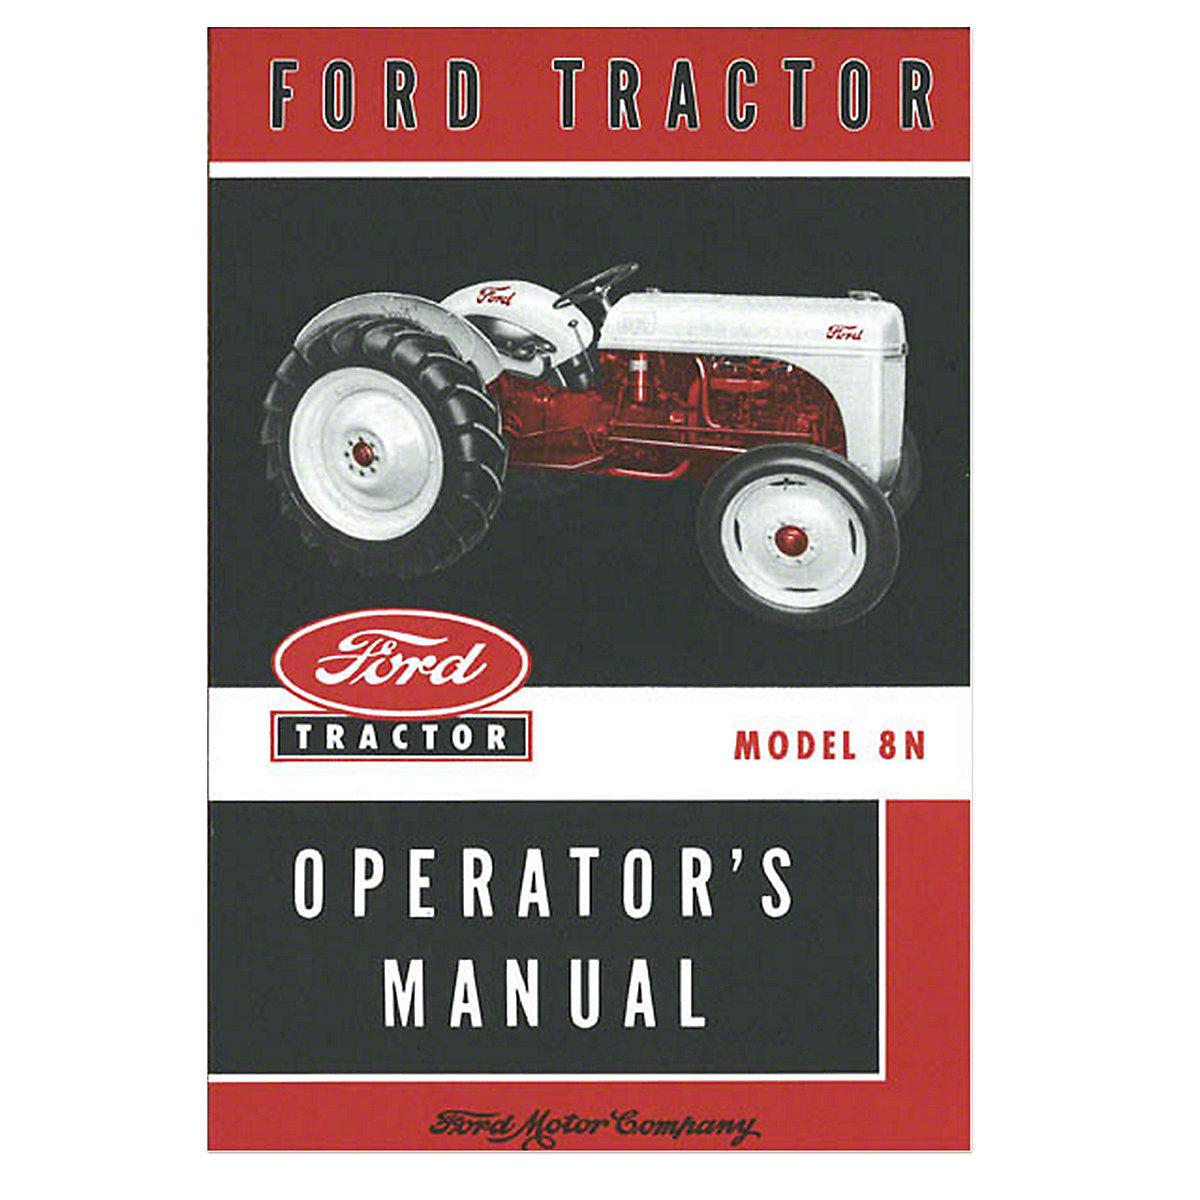 Restoration Quality Horizontal Muffler Fds3524 Ford Tractor Wiring Diagram On Starter For 8n Operators Manual Reprint